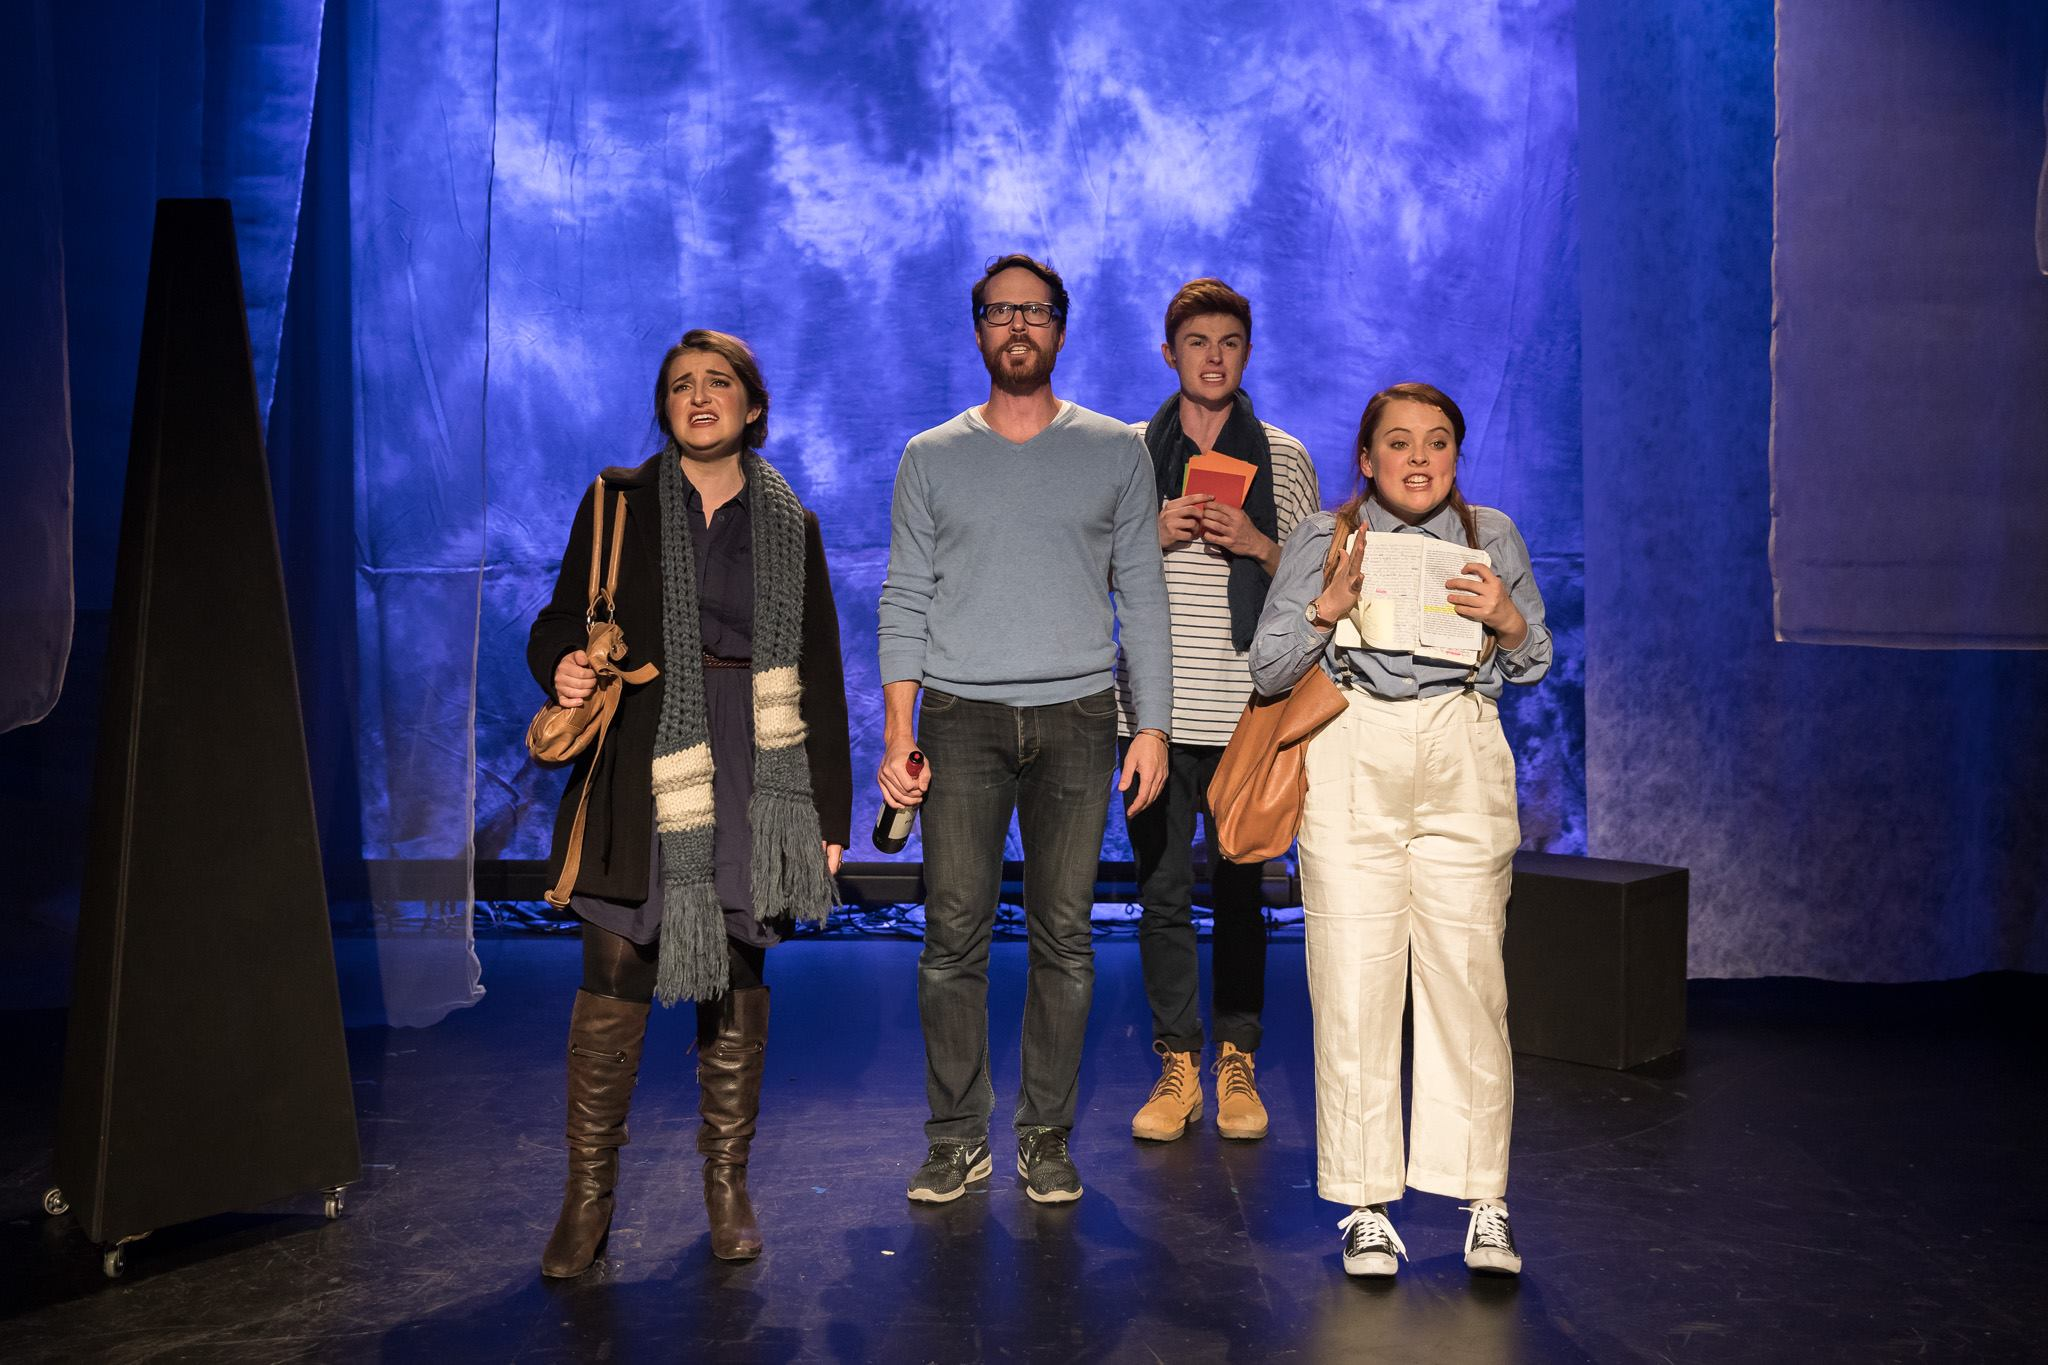 BWW Review: Pursued by Bear's ORDINARY DAYS